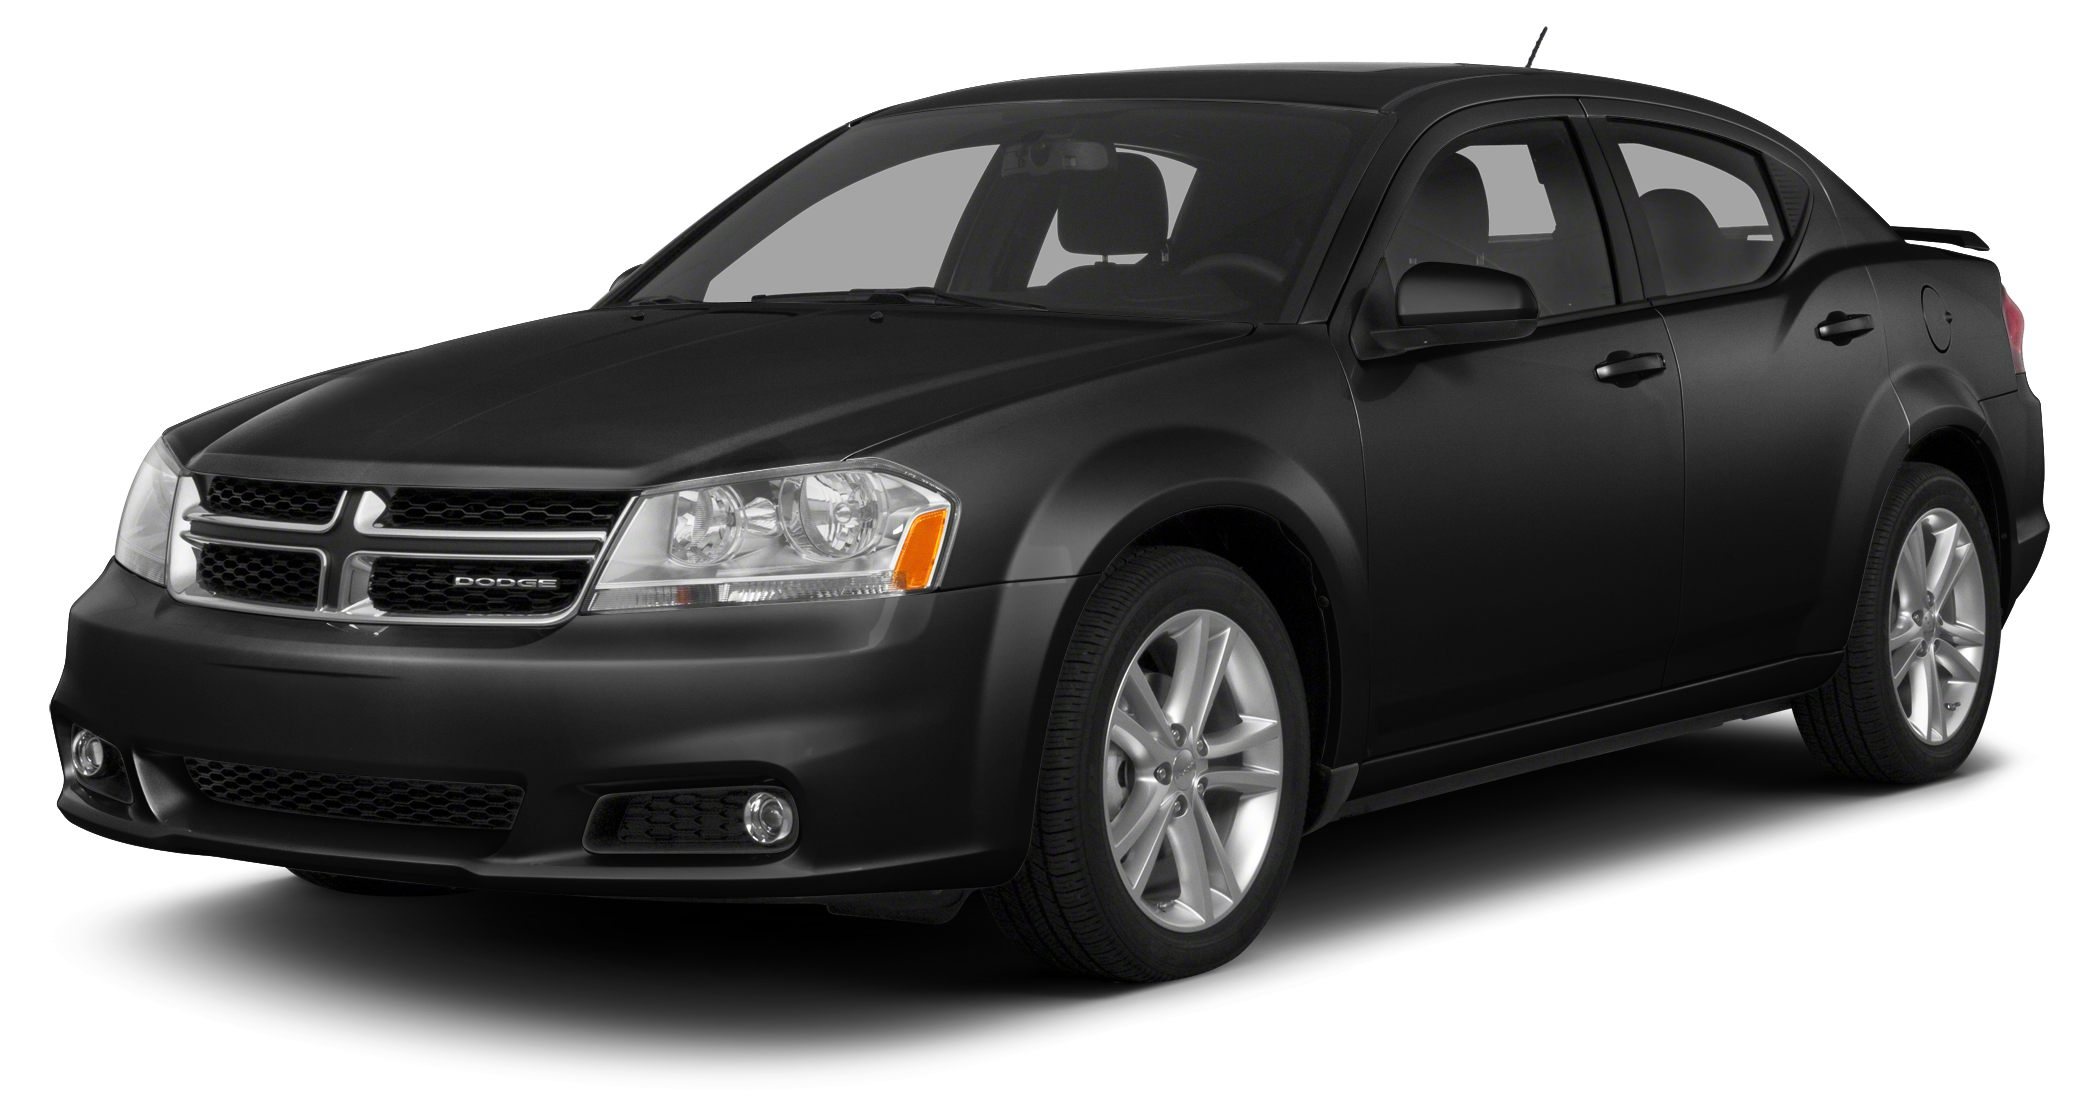 2013 Dodge Avenger SXT CARFAX 1-Owner FUEL EFFICIENT 31 MPG Hwy20 MPG City SXT trim iPodMP3 I